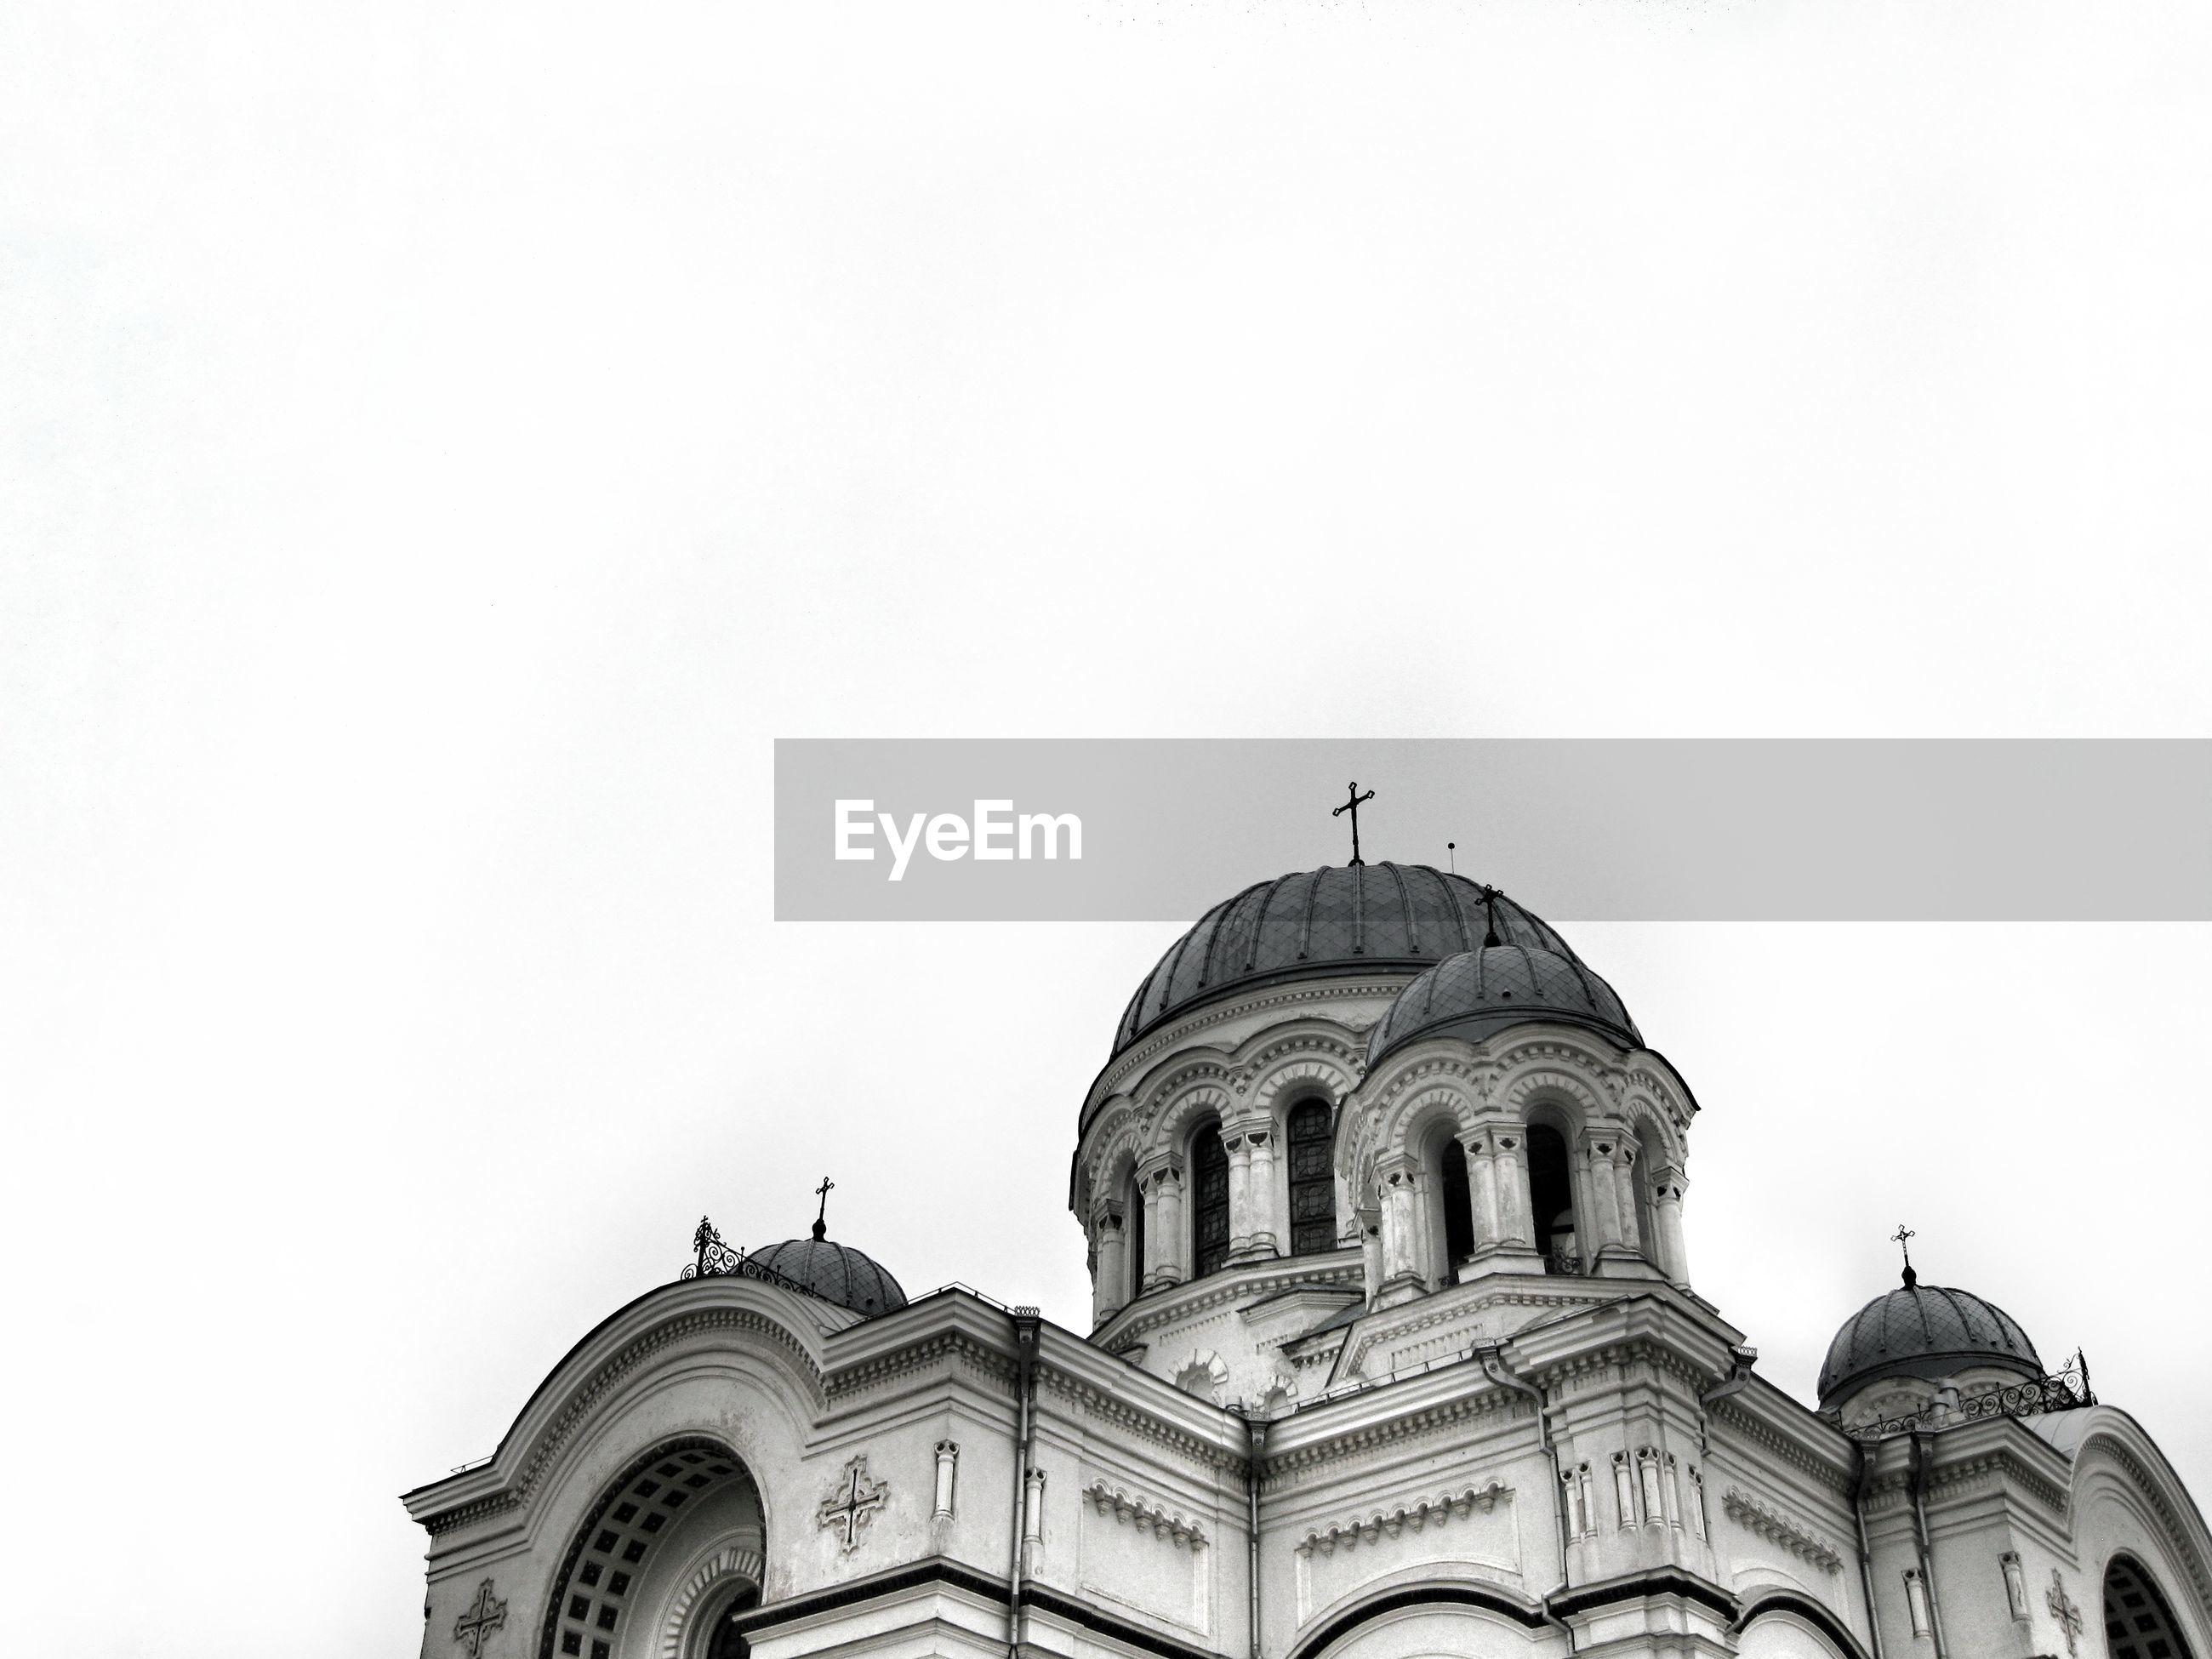 architecture, dome, building exterior, built structure, copy space, religion, clear sky, arch, travel destinations, place of worship, famous place, tourism, high section, church, history, national landmark, facade, outdoors, capital cities, international landmark, sky, basilique du sacre coeur, culture, architectural feature, no people, flying, spire